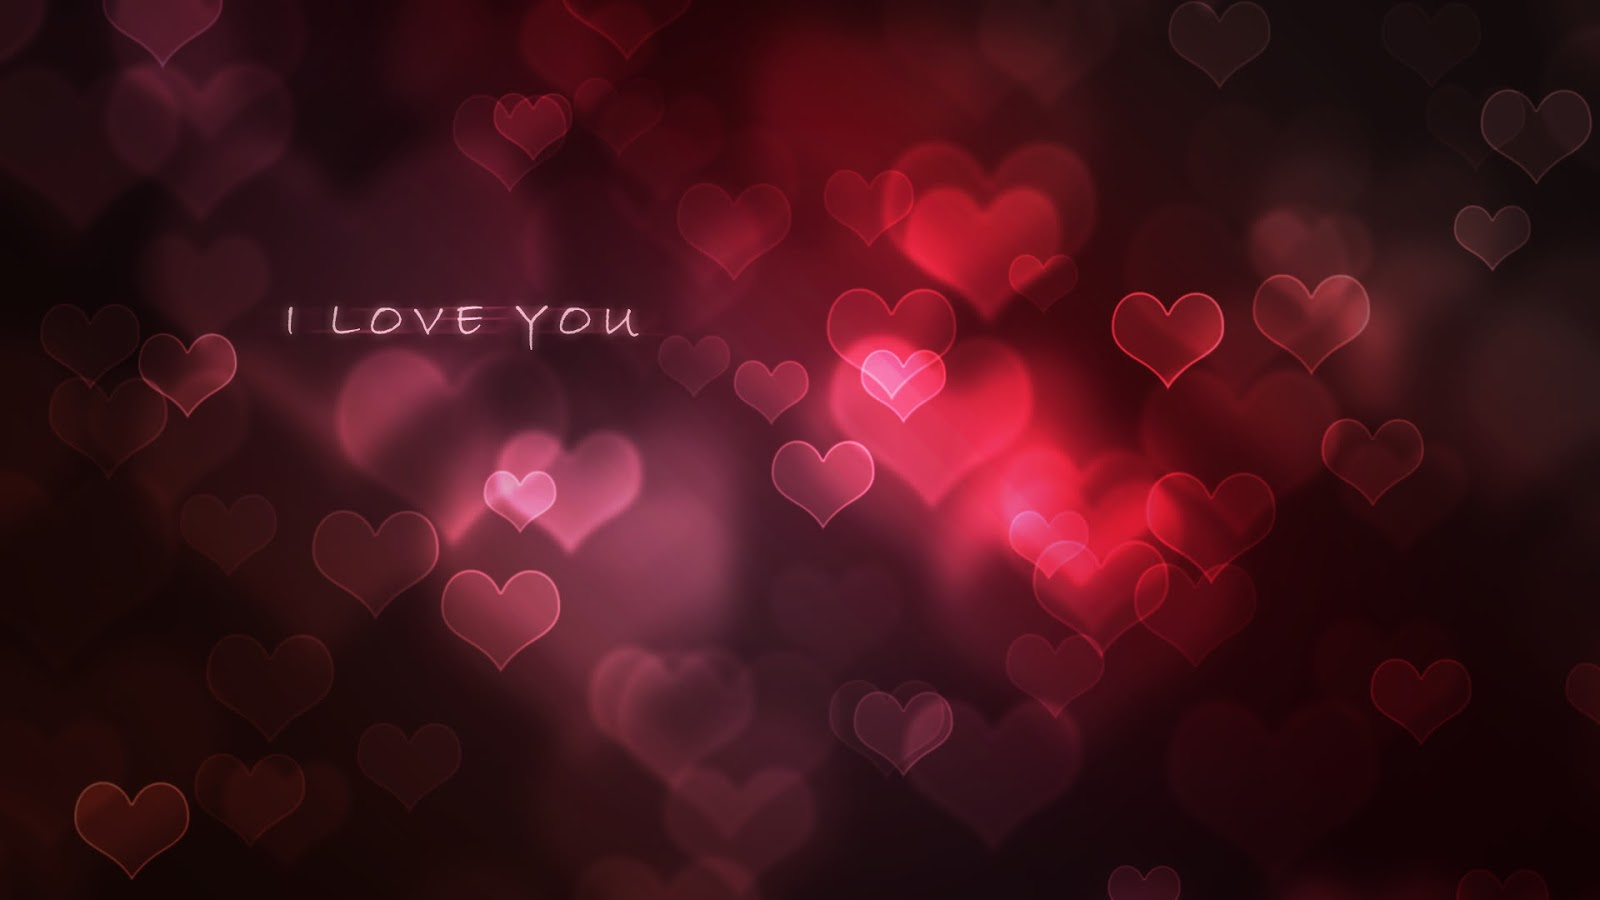 Love You (ILU) Pictures, Photos and HD wallpapers 2016